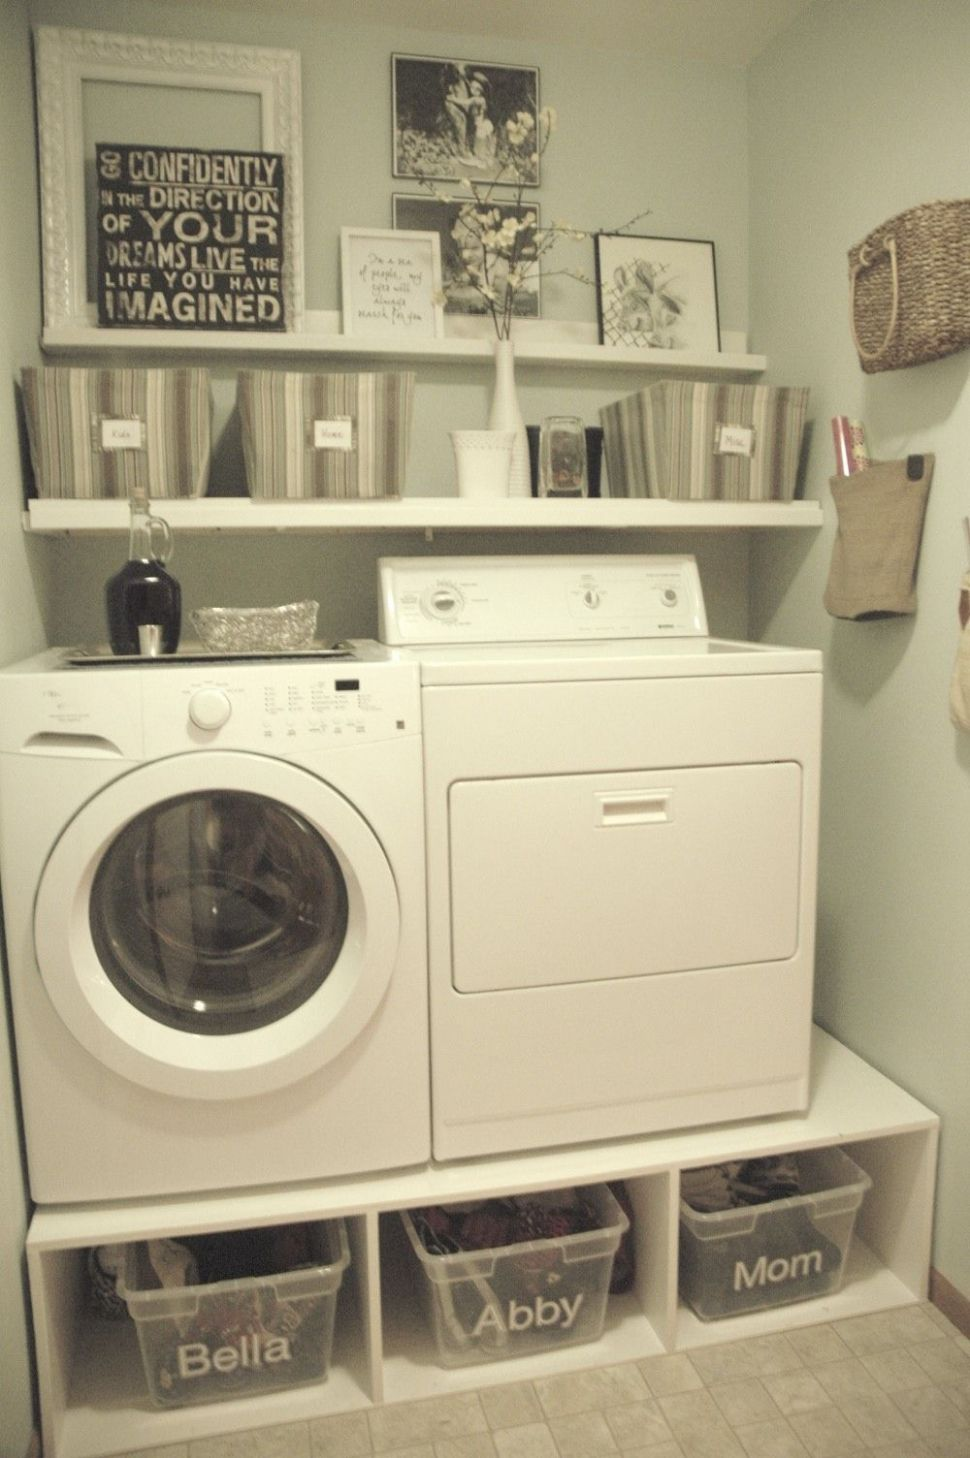 Small-Space Laundry Room Storage (With images) | Small laundry space - laundry room storage ideas